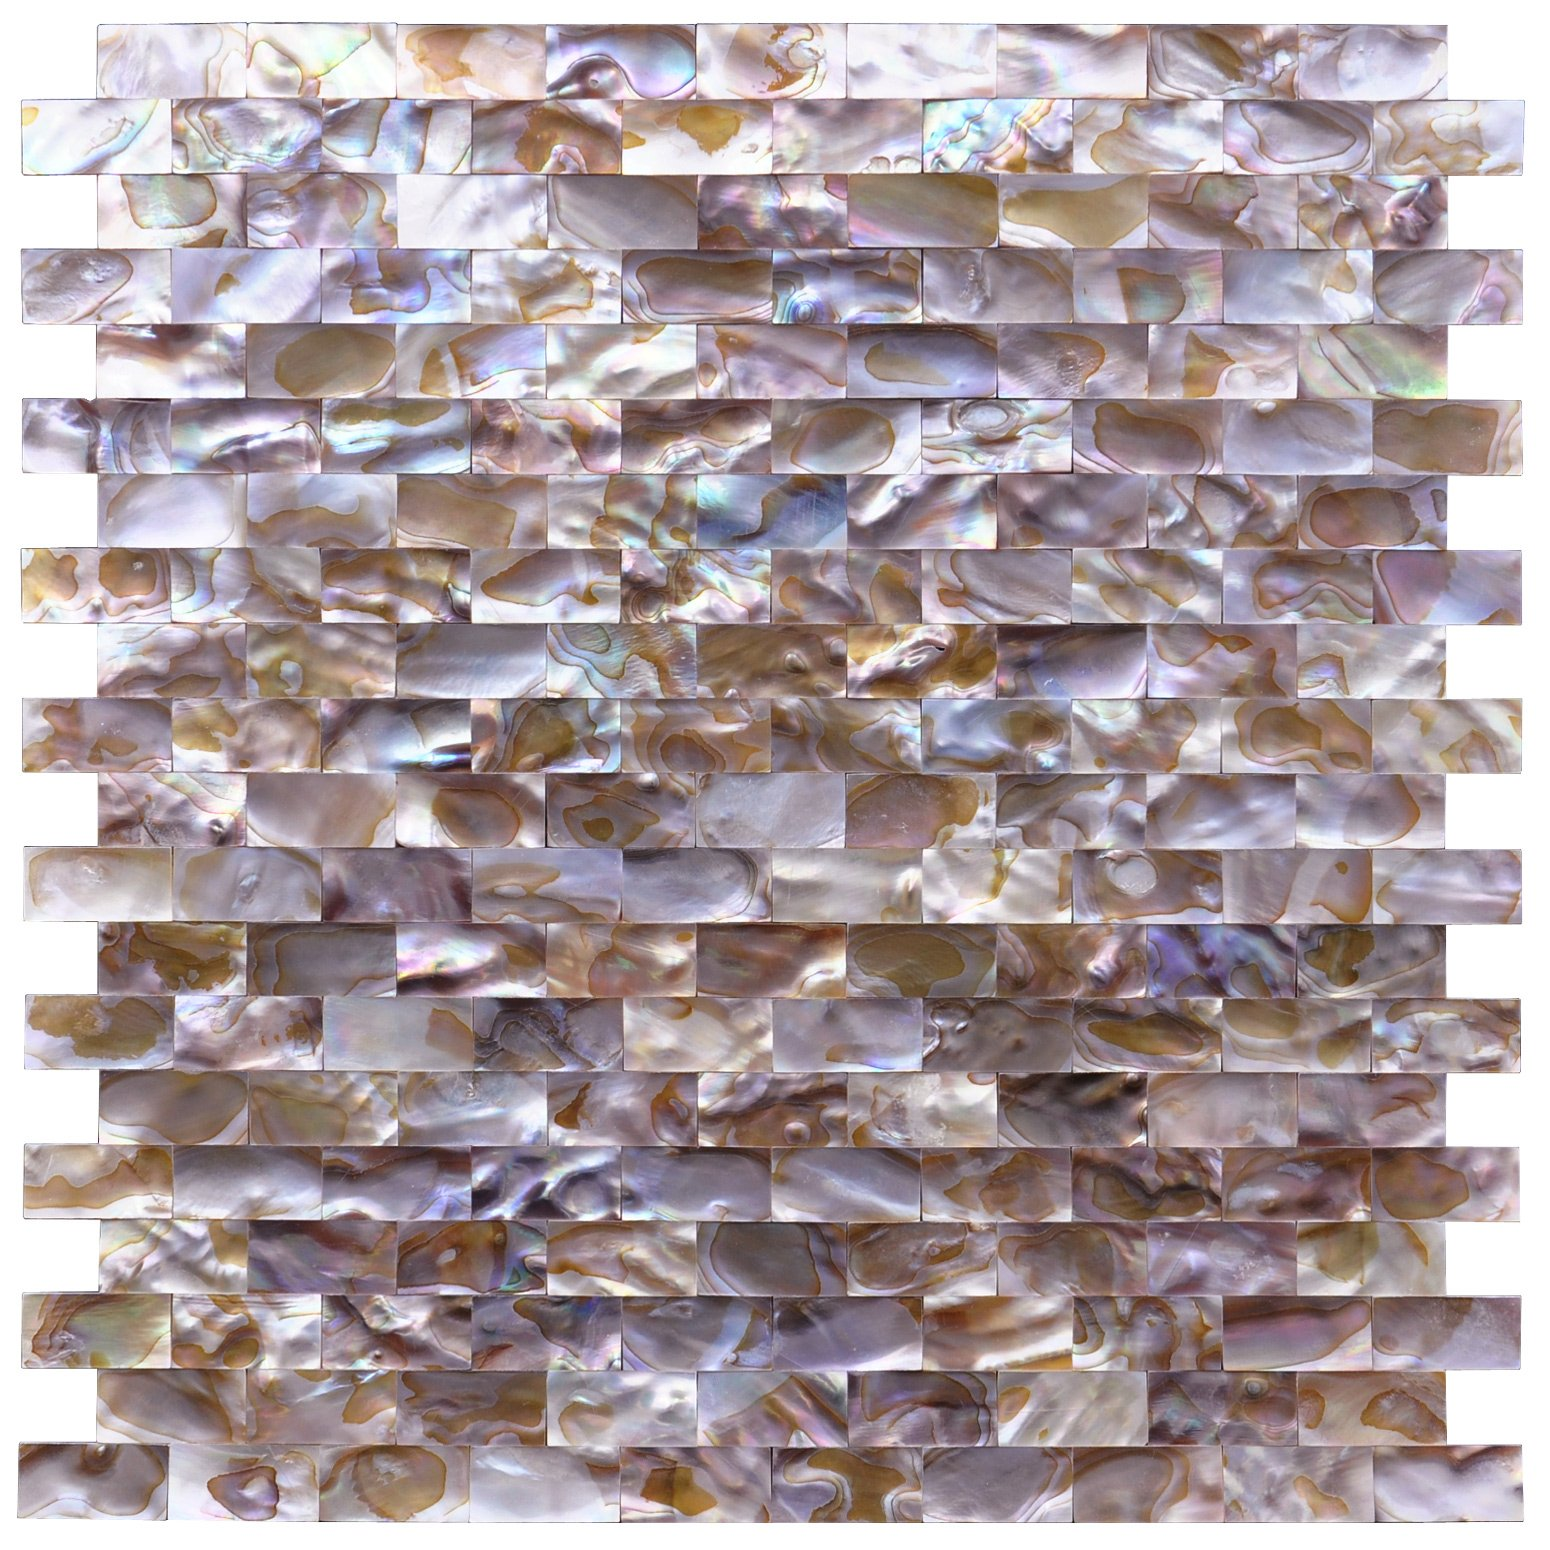 Art3d Natural Mother of Pearl Oyster Mini Brick Shell Mosaic Tile for Kitchen Backsplashes 10 Sq Ft Pack of 10 by Art3d (Image #1)